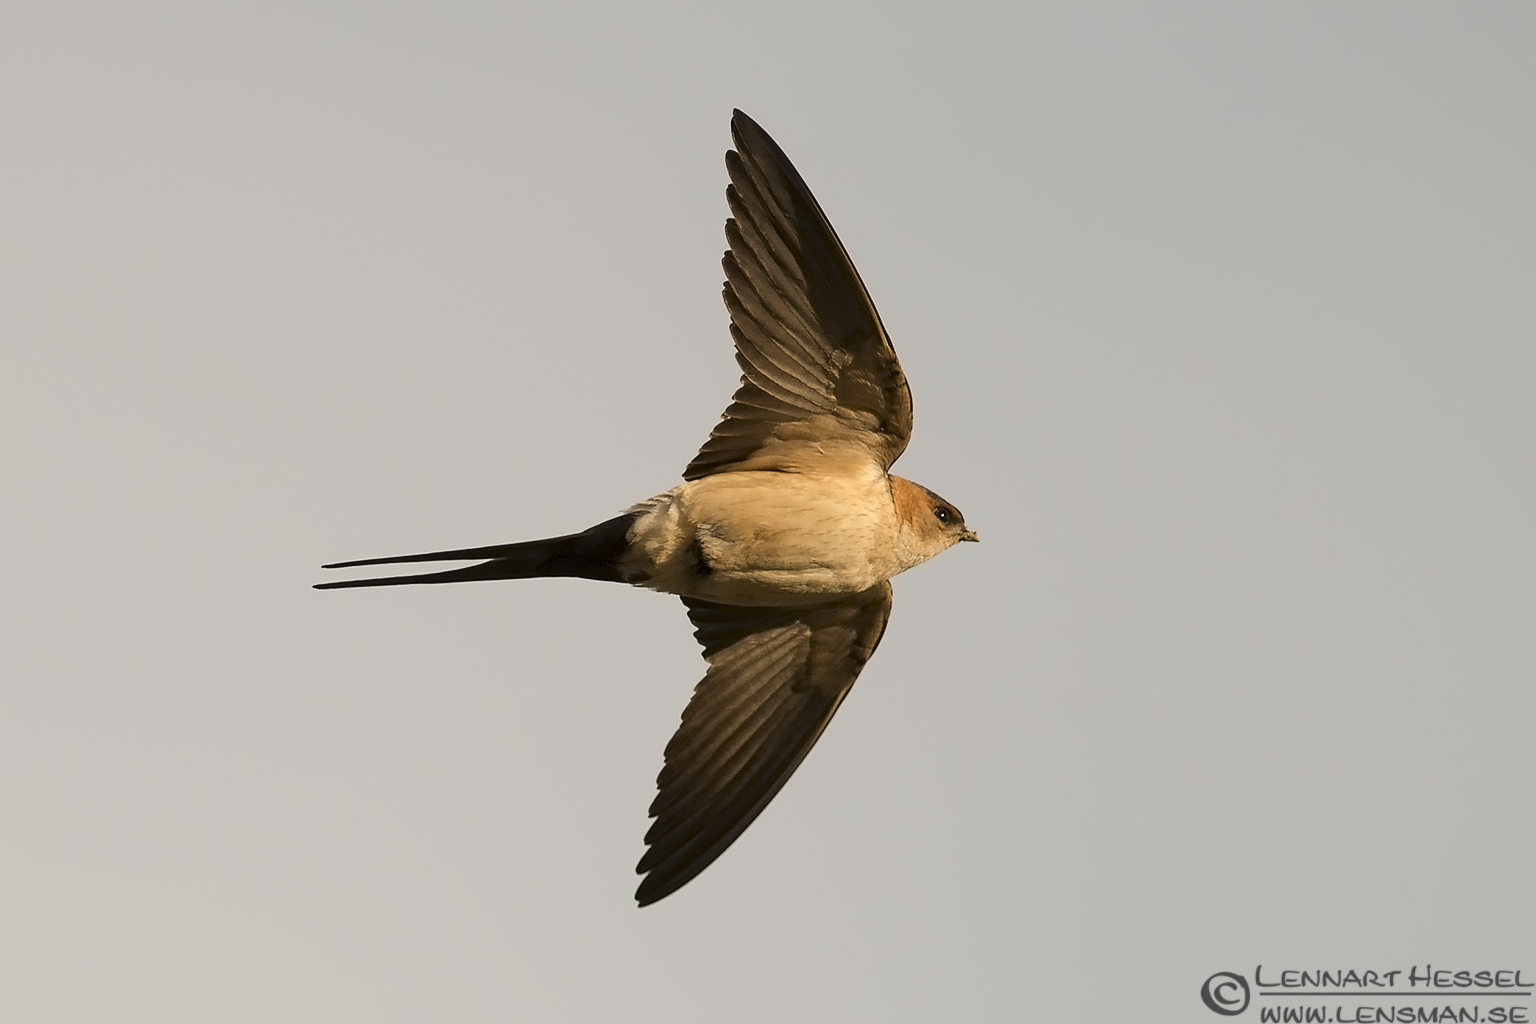 Red-rumped Swallow in Bulgaria